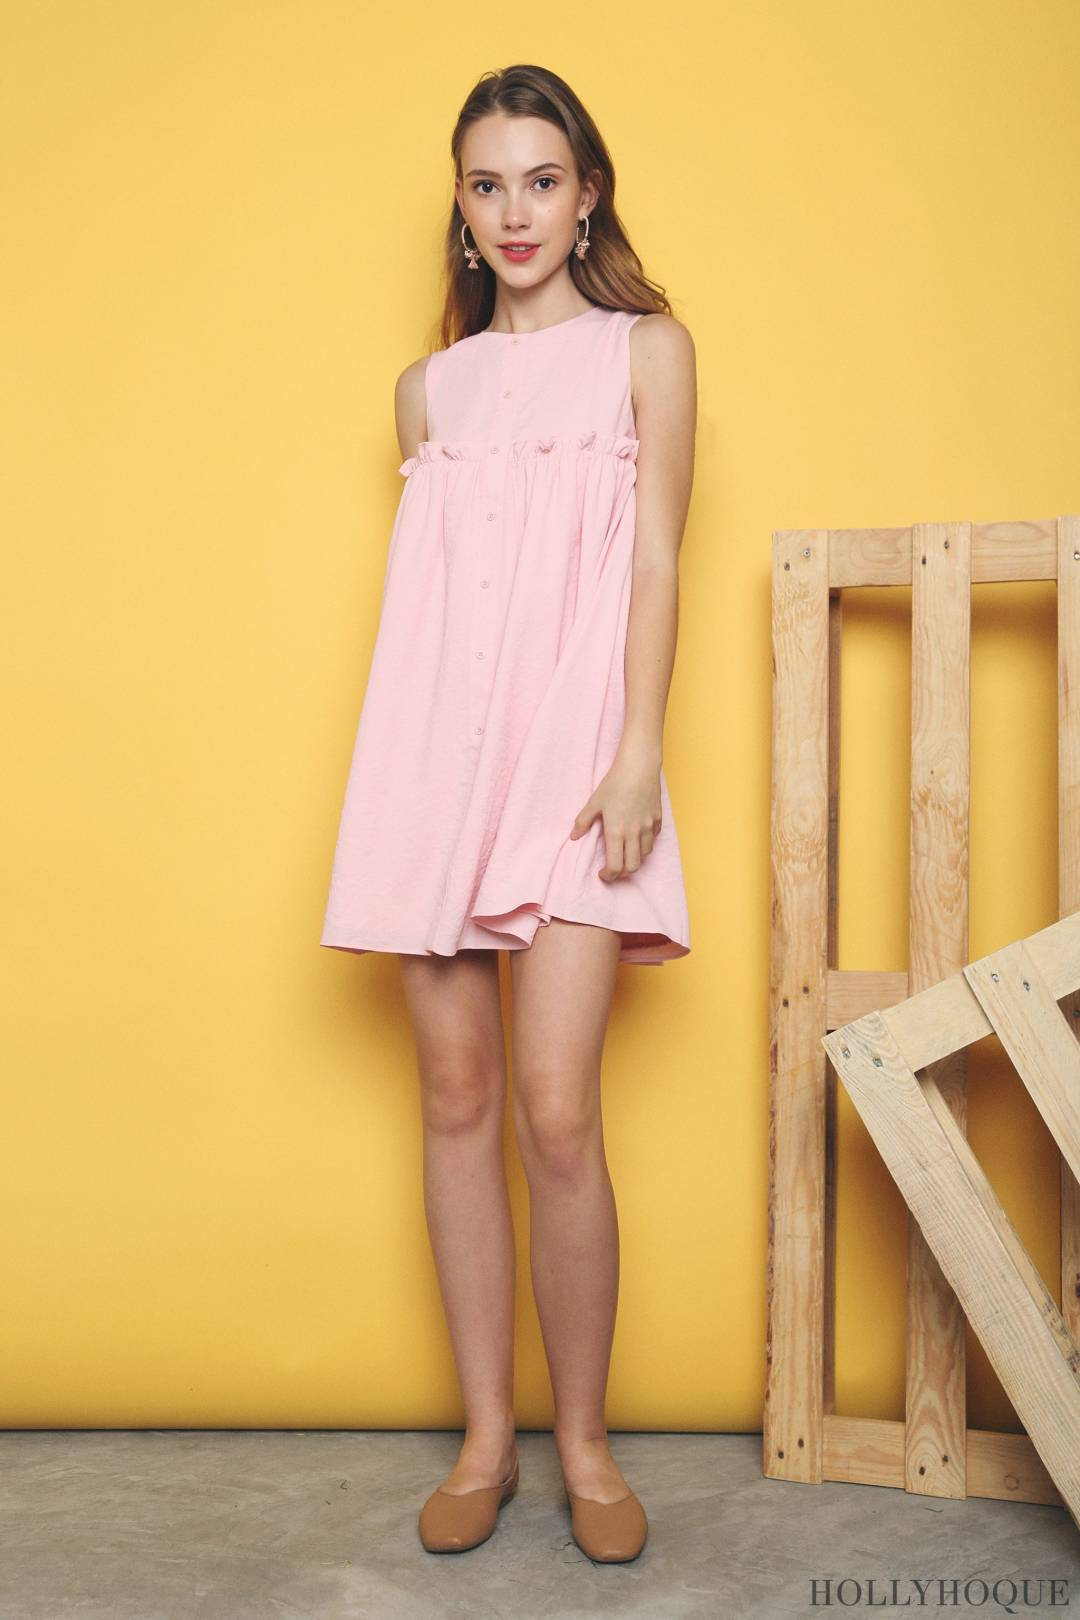 Lee Ruffles Babydoll Dress Candy Pink